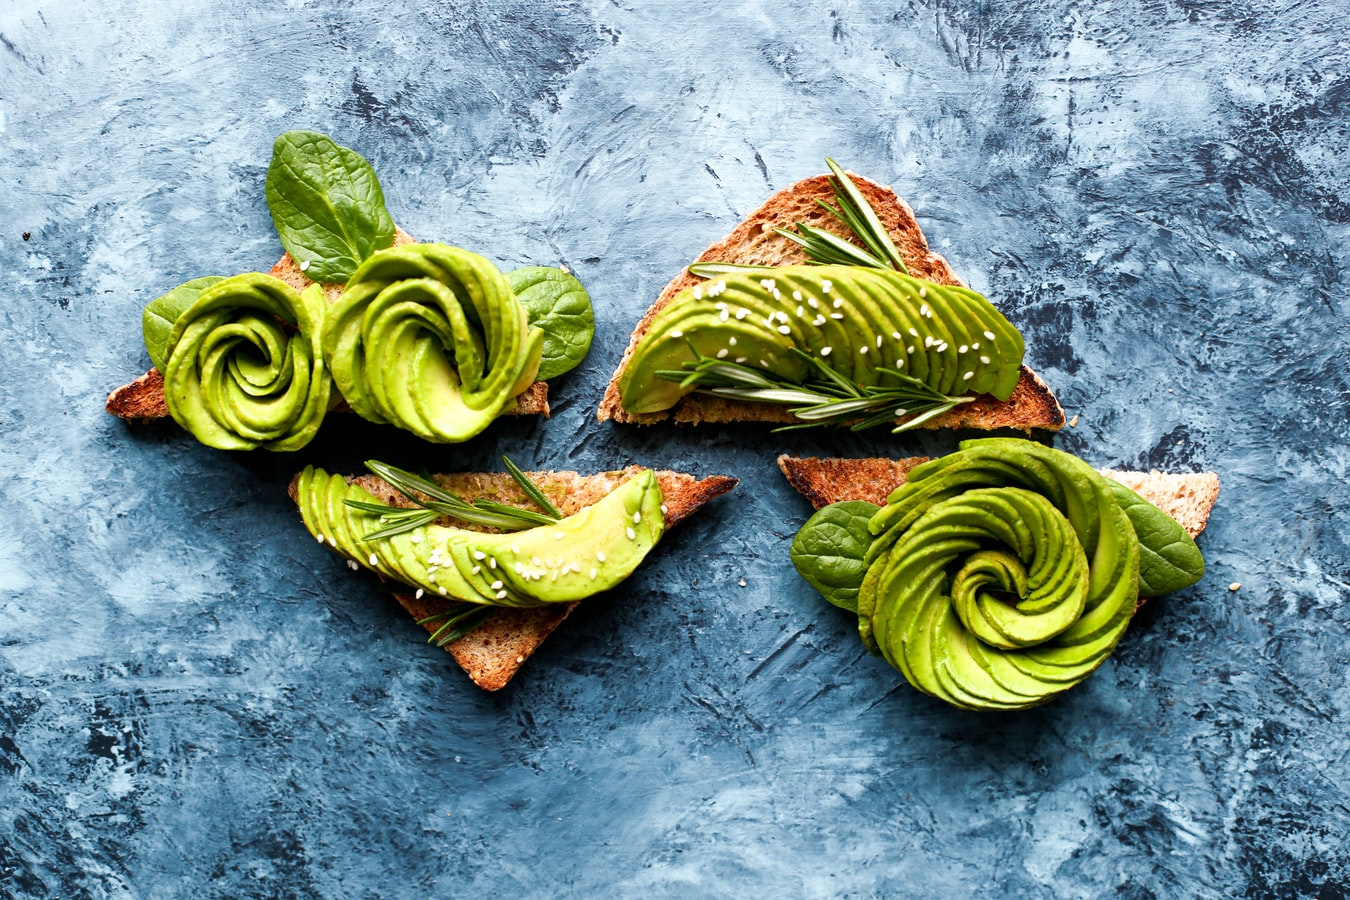 intermittent fasting- avocado toast makes a great meal